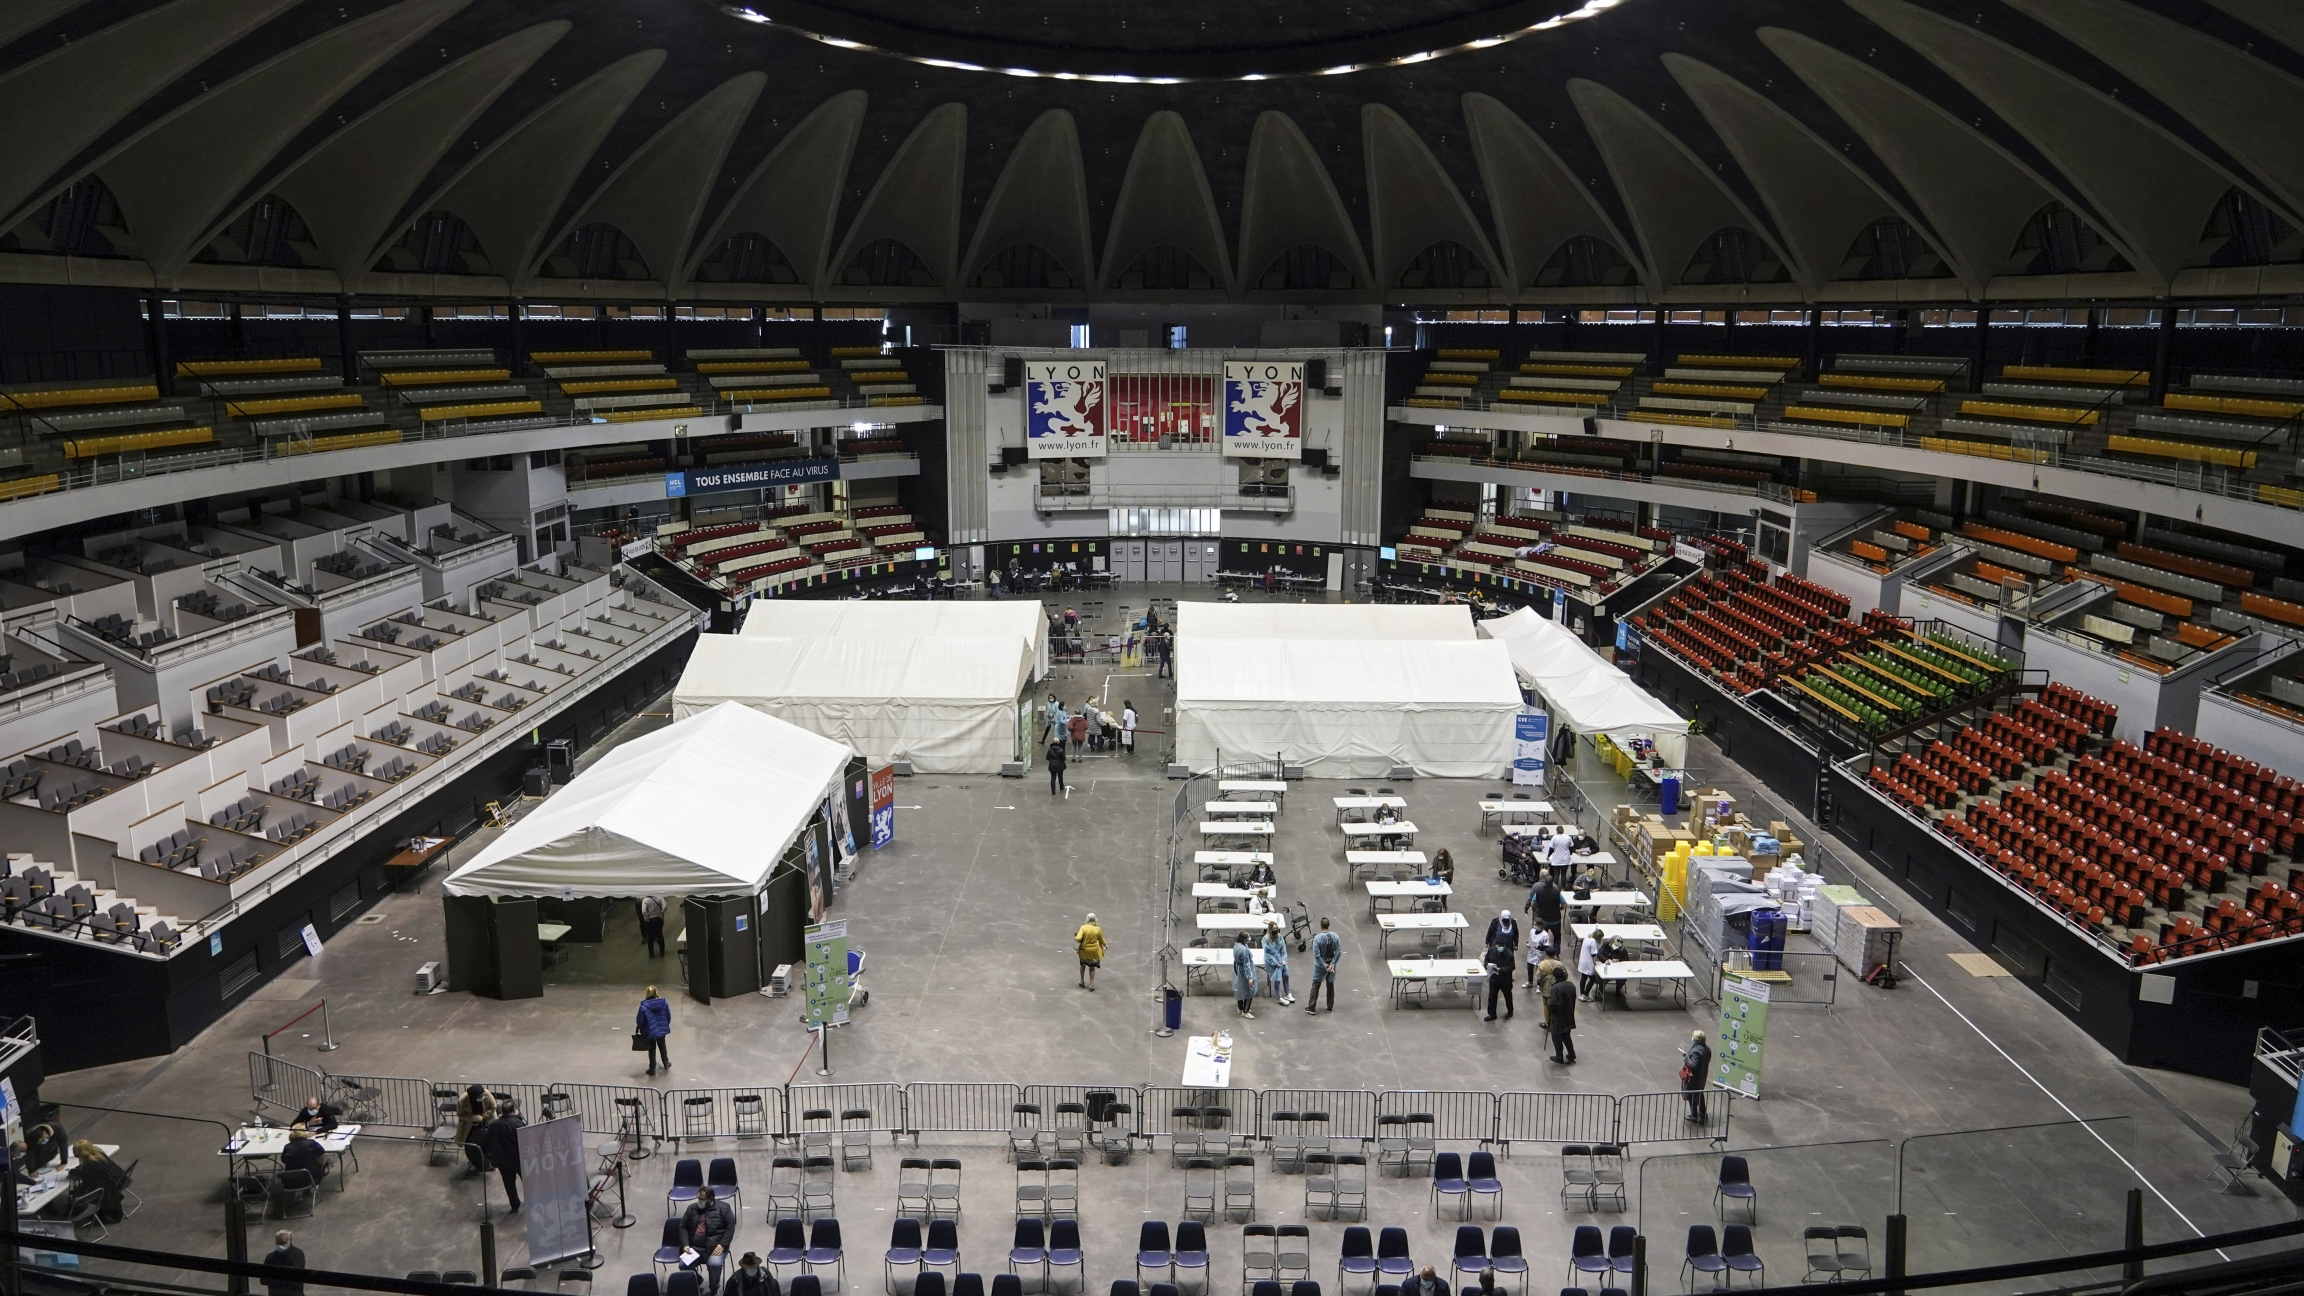 A stadium is set up as a vaccination drive site in France.